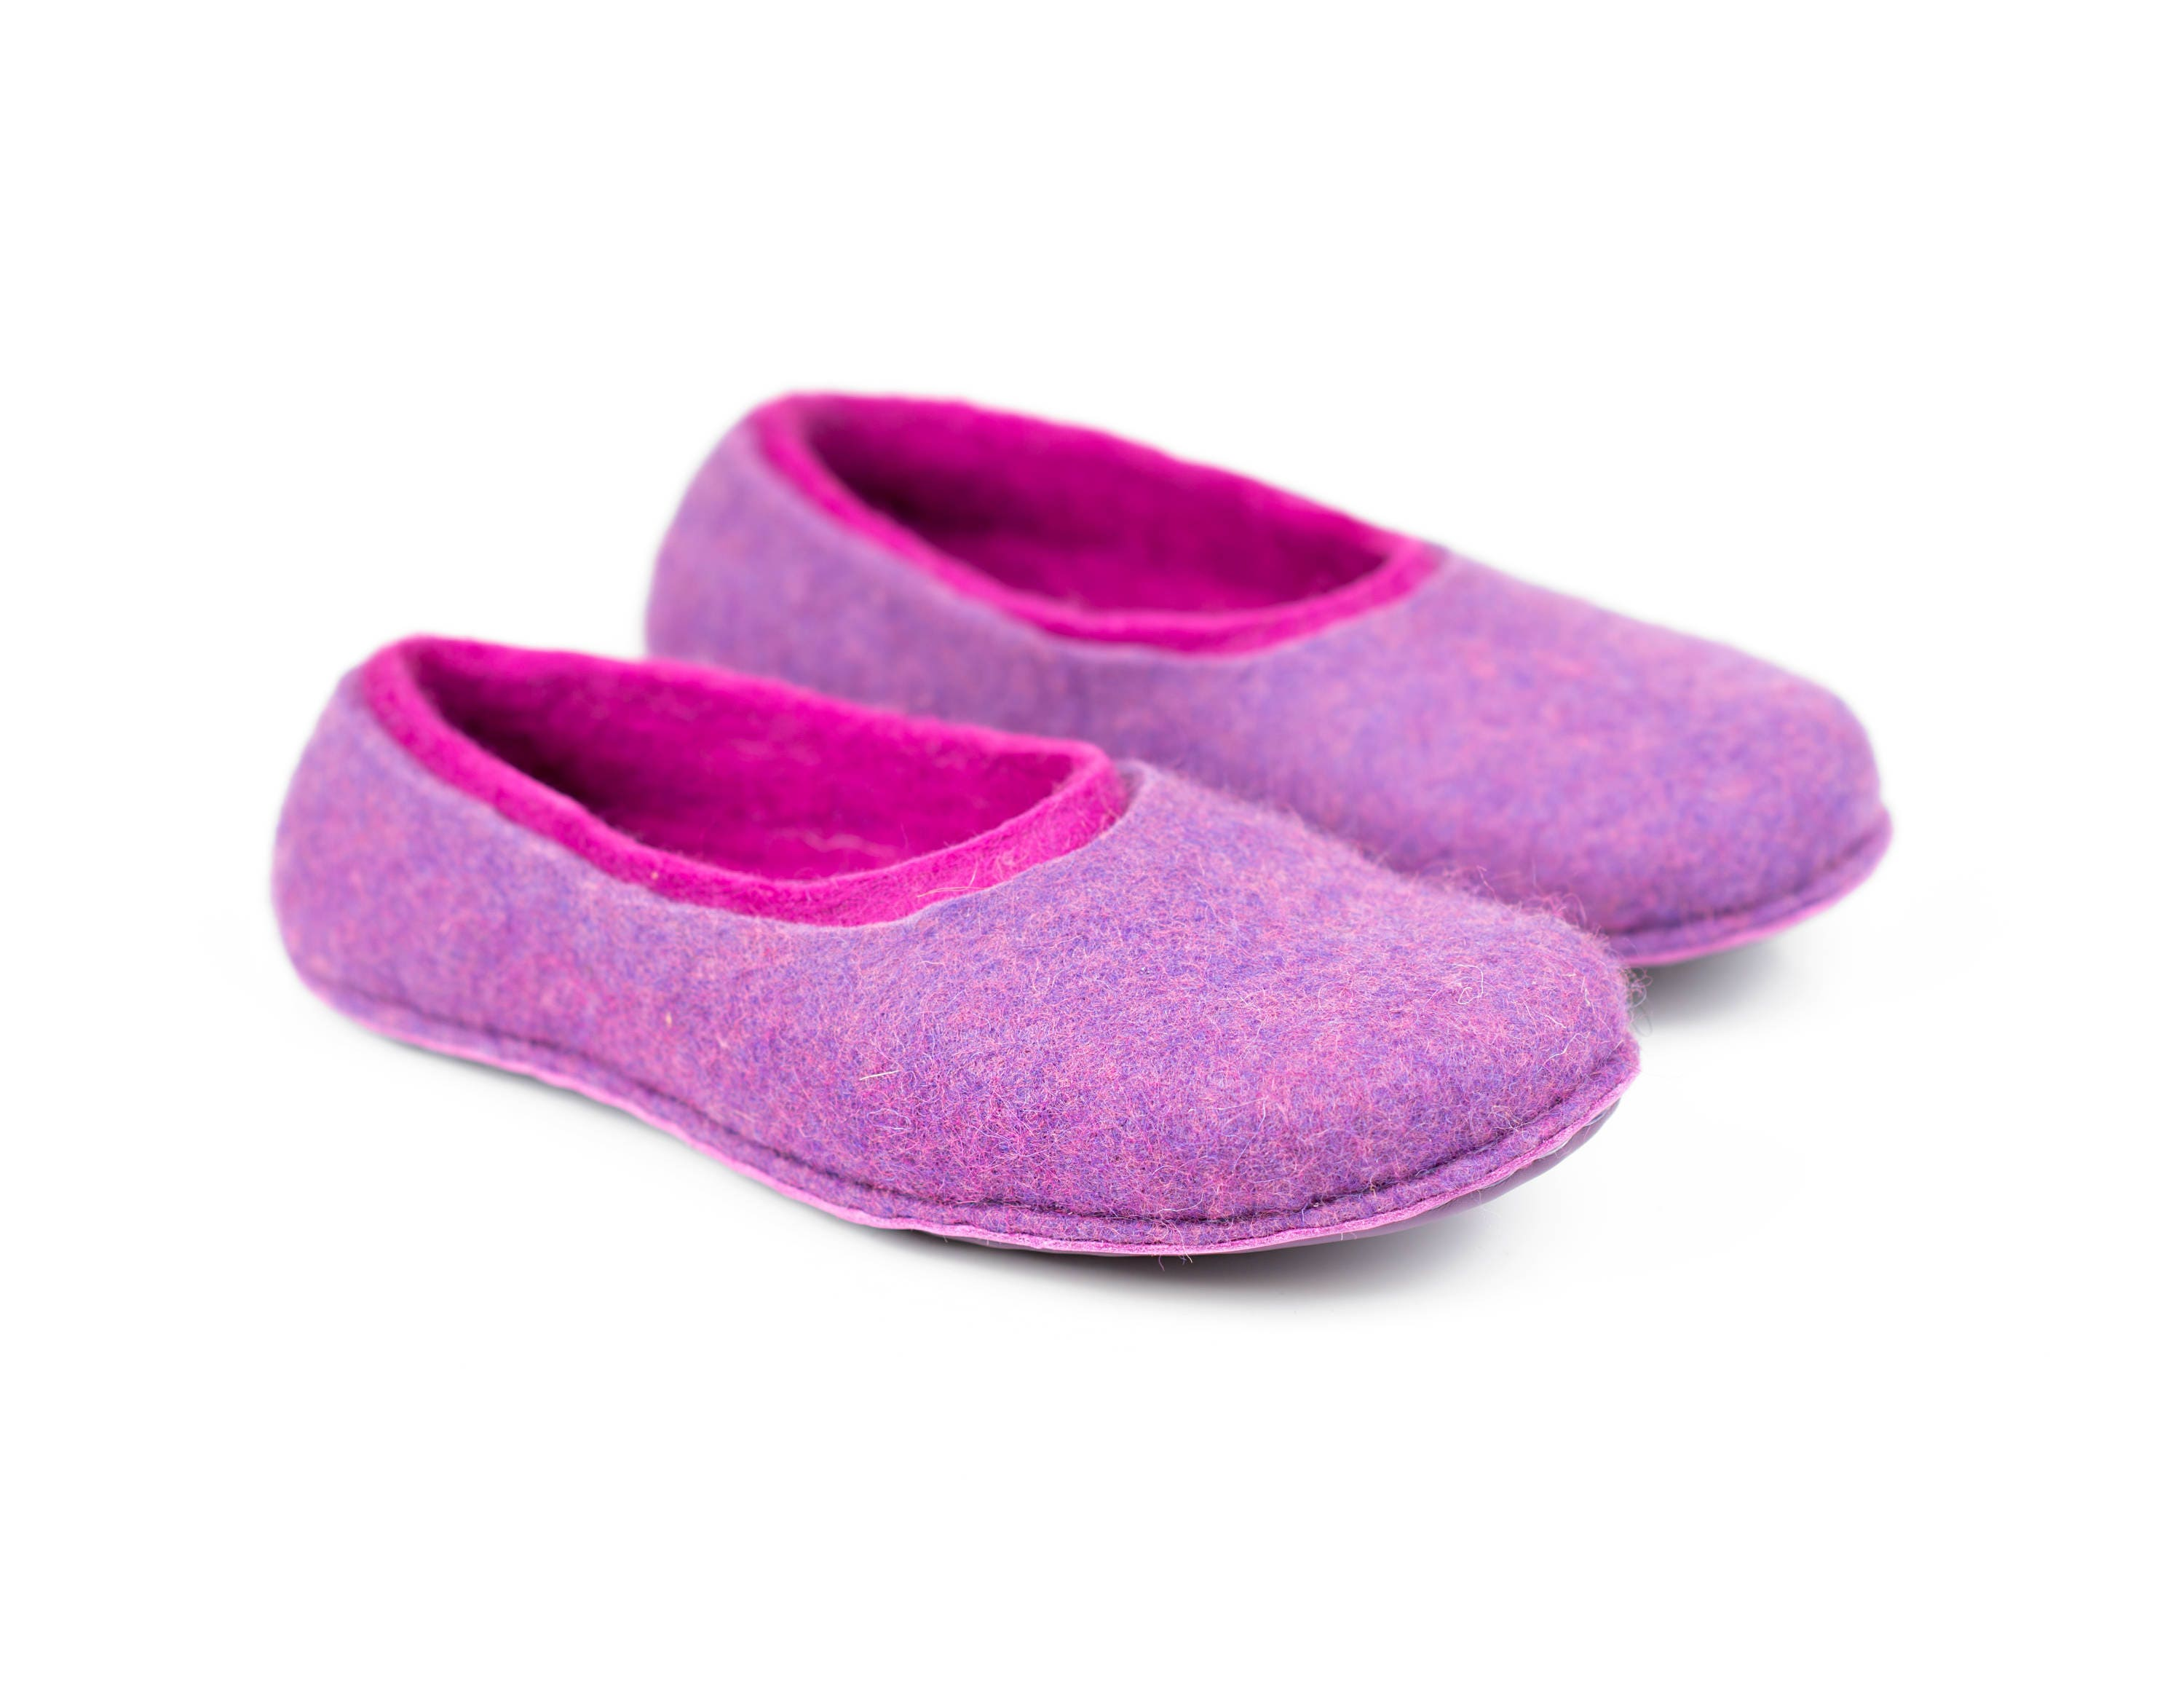 4169419bc276a 2-layered women wool slippers handmade from felted wool, Lavender ...